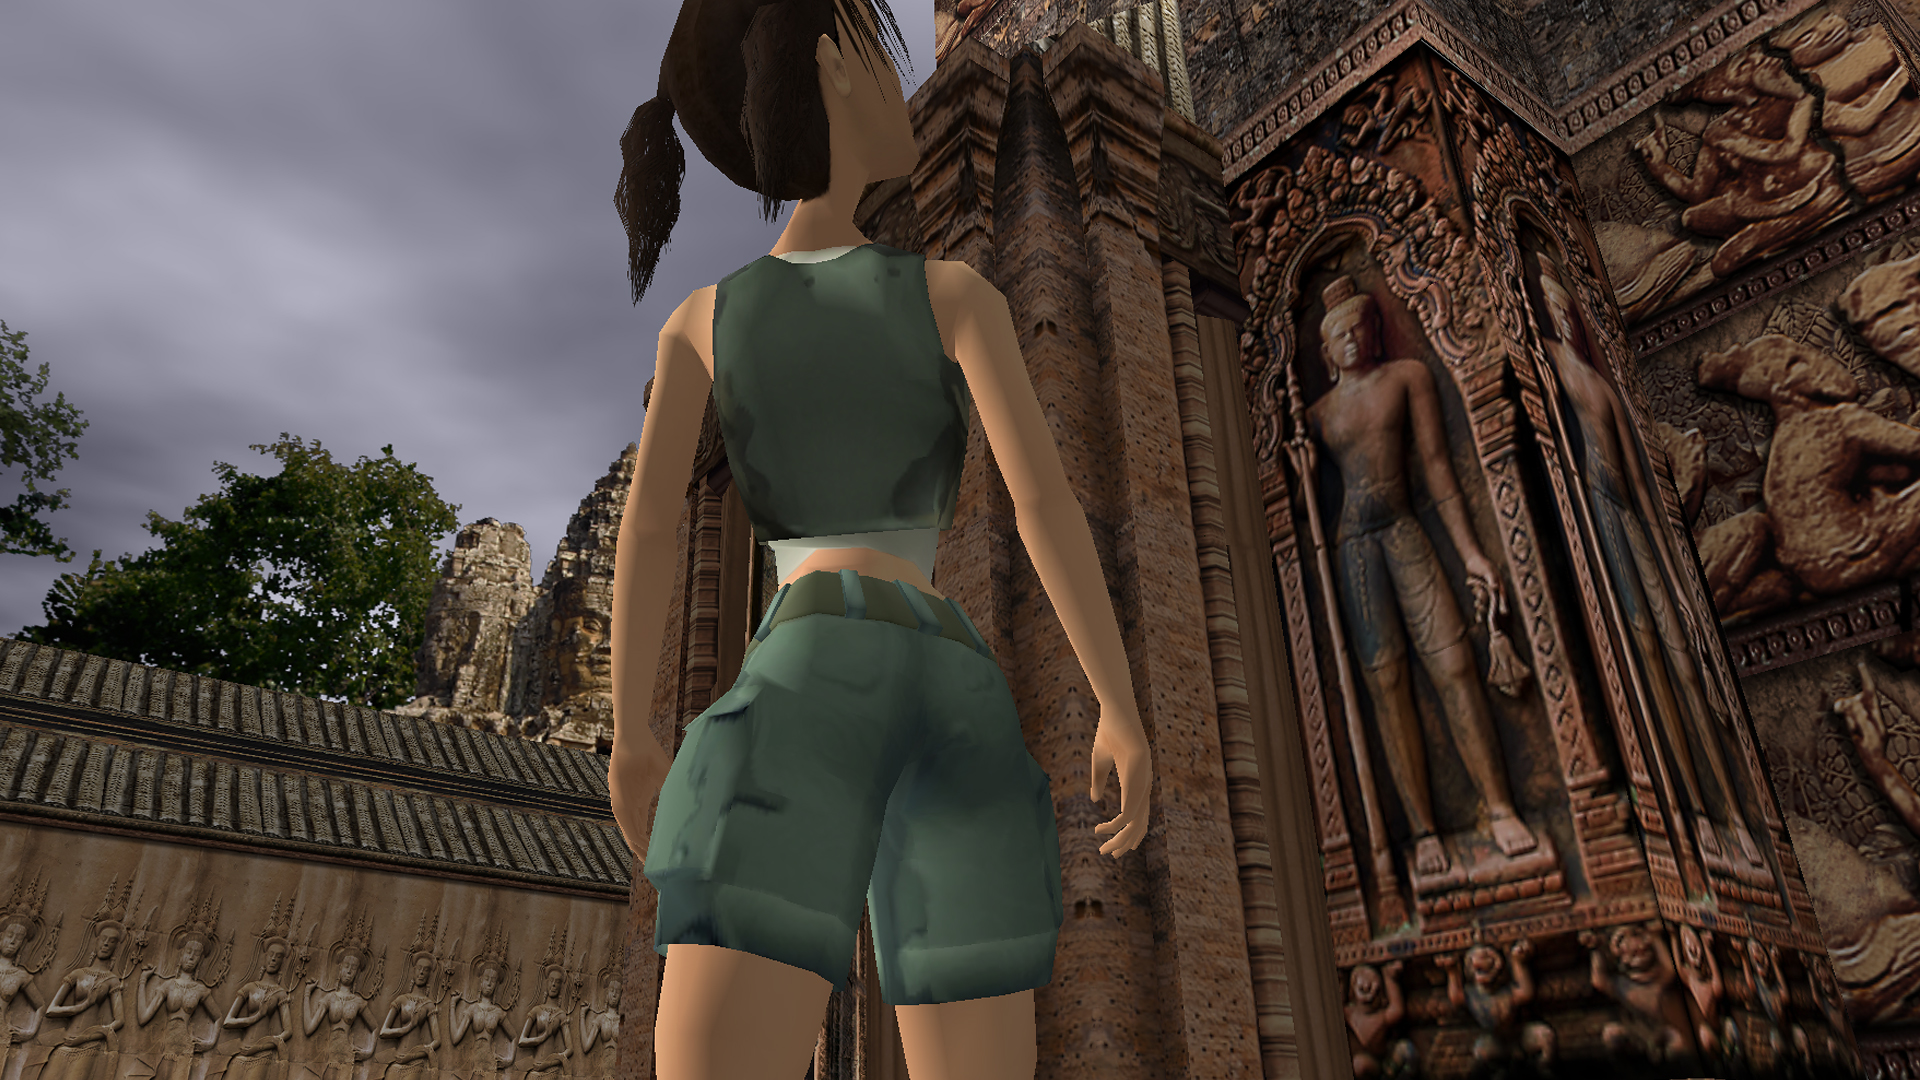 Tomb Raider 4 - Angkor Wat Remastred